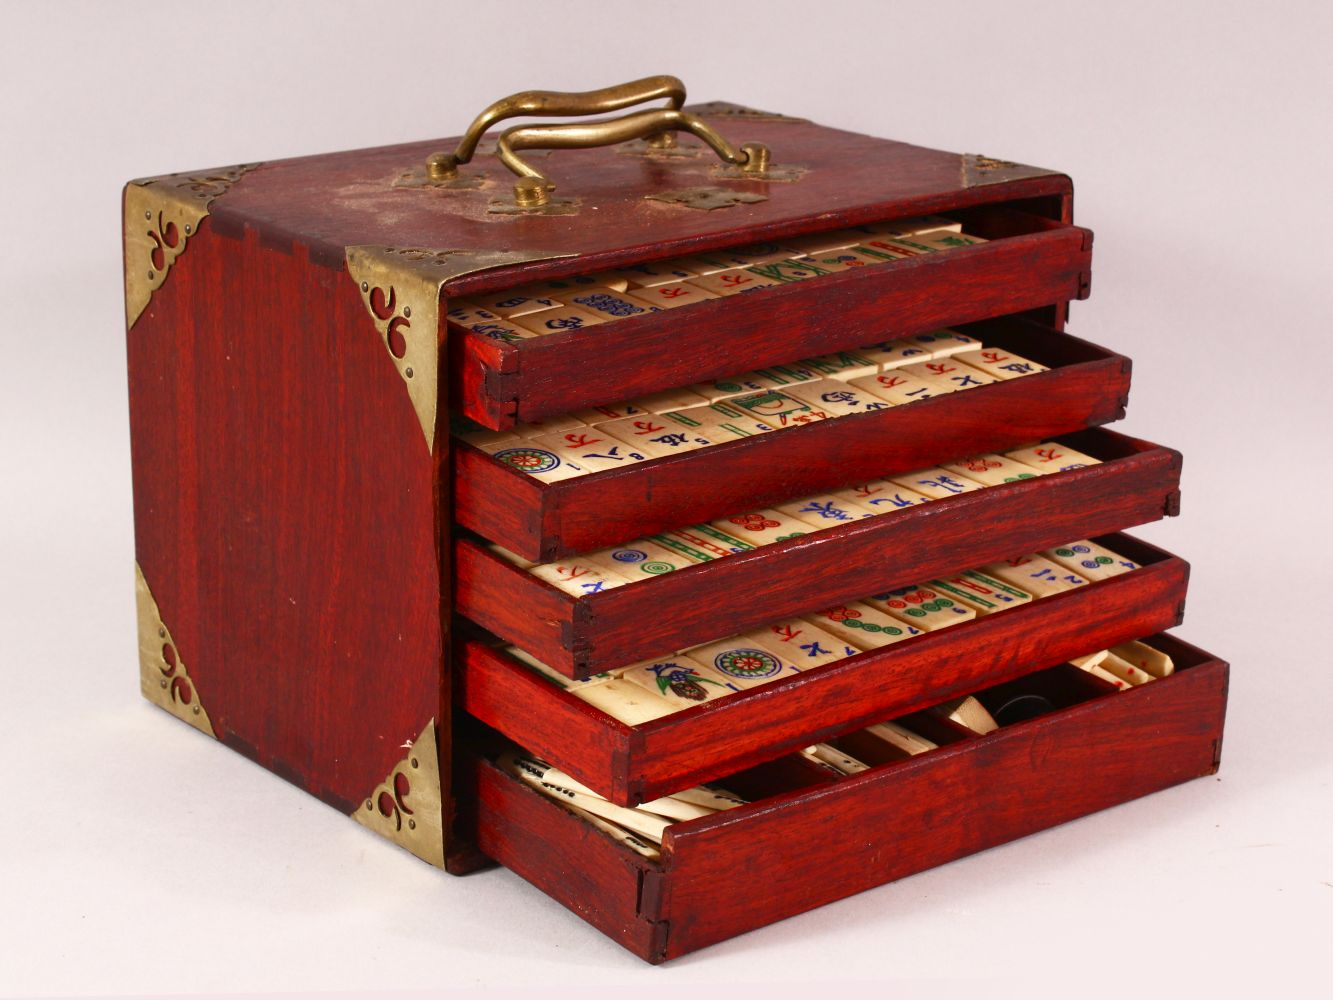 A CHINESE BAMBOO & BONE BOXED MAHJONG SET - comprising 56 drawers full of counters and sticks,